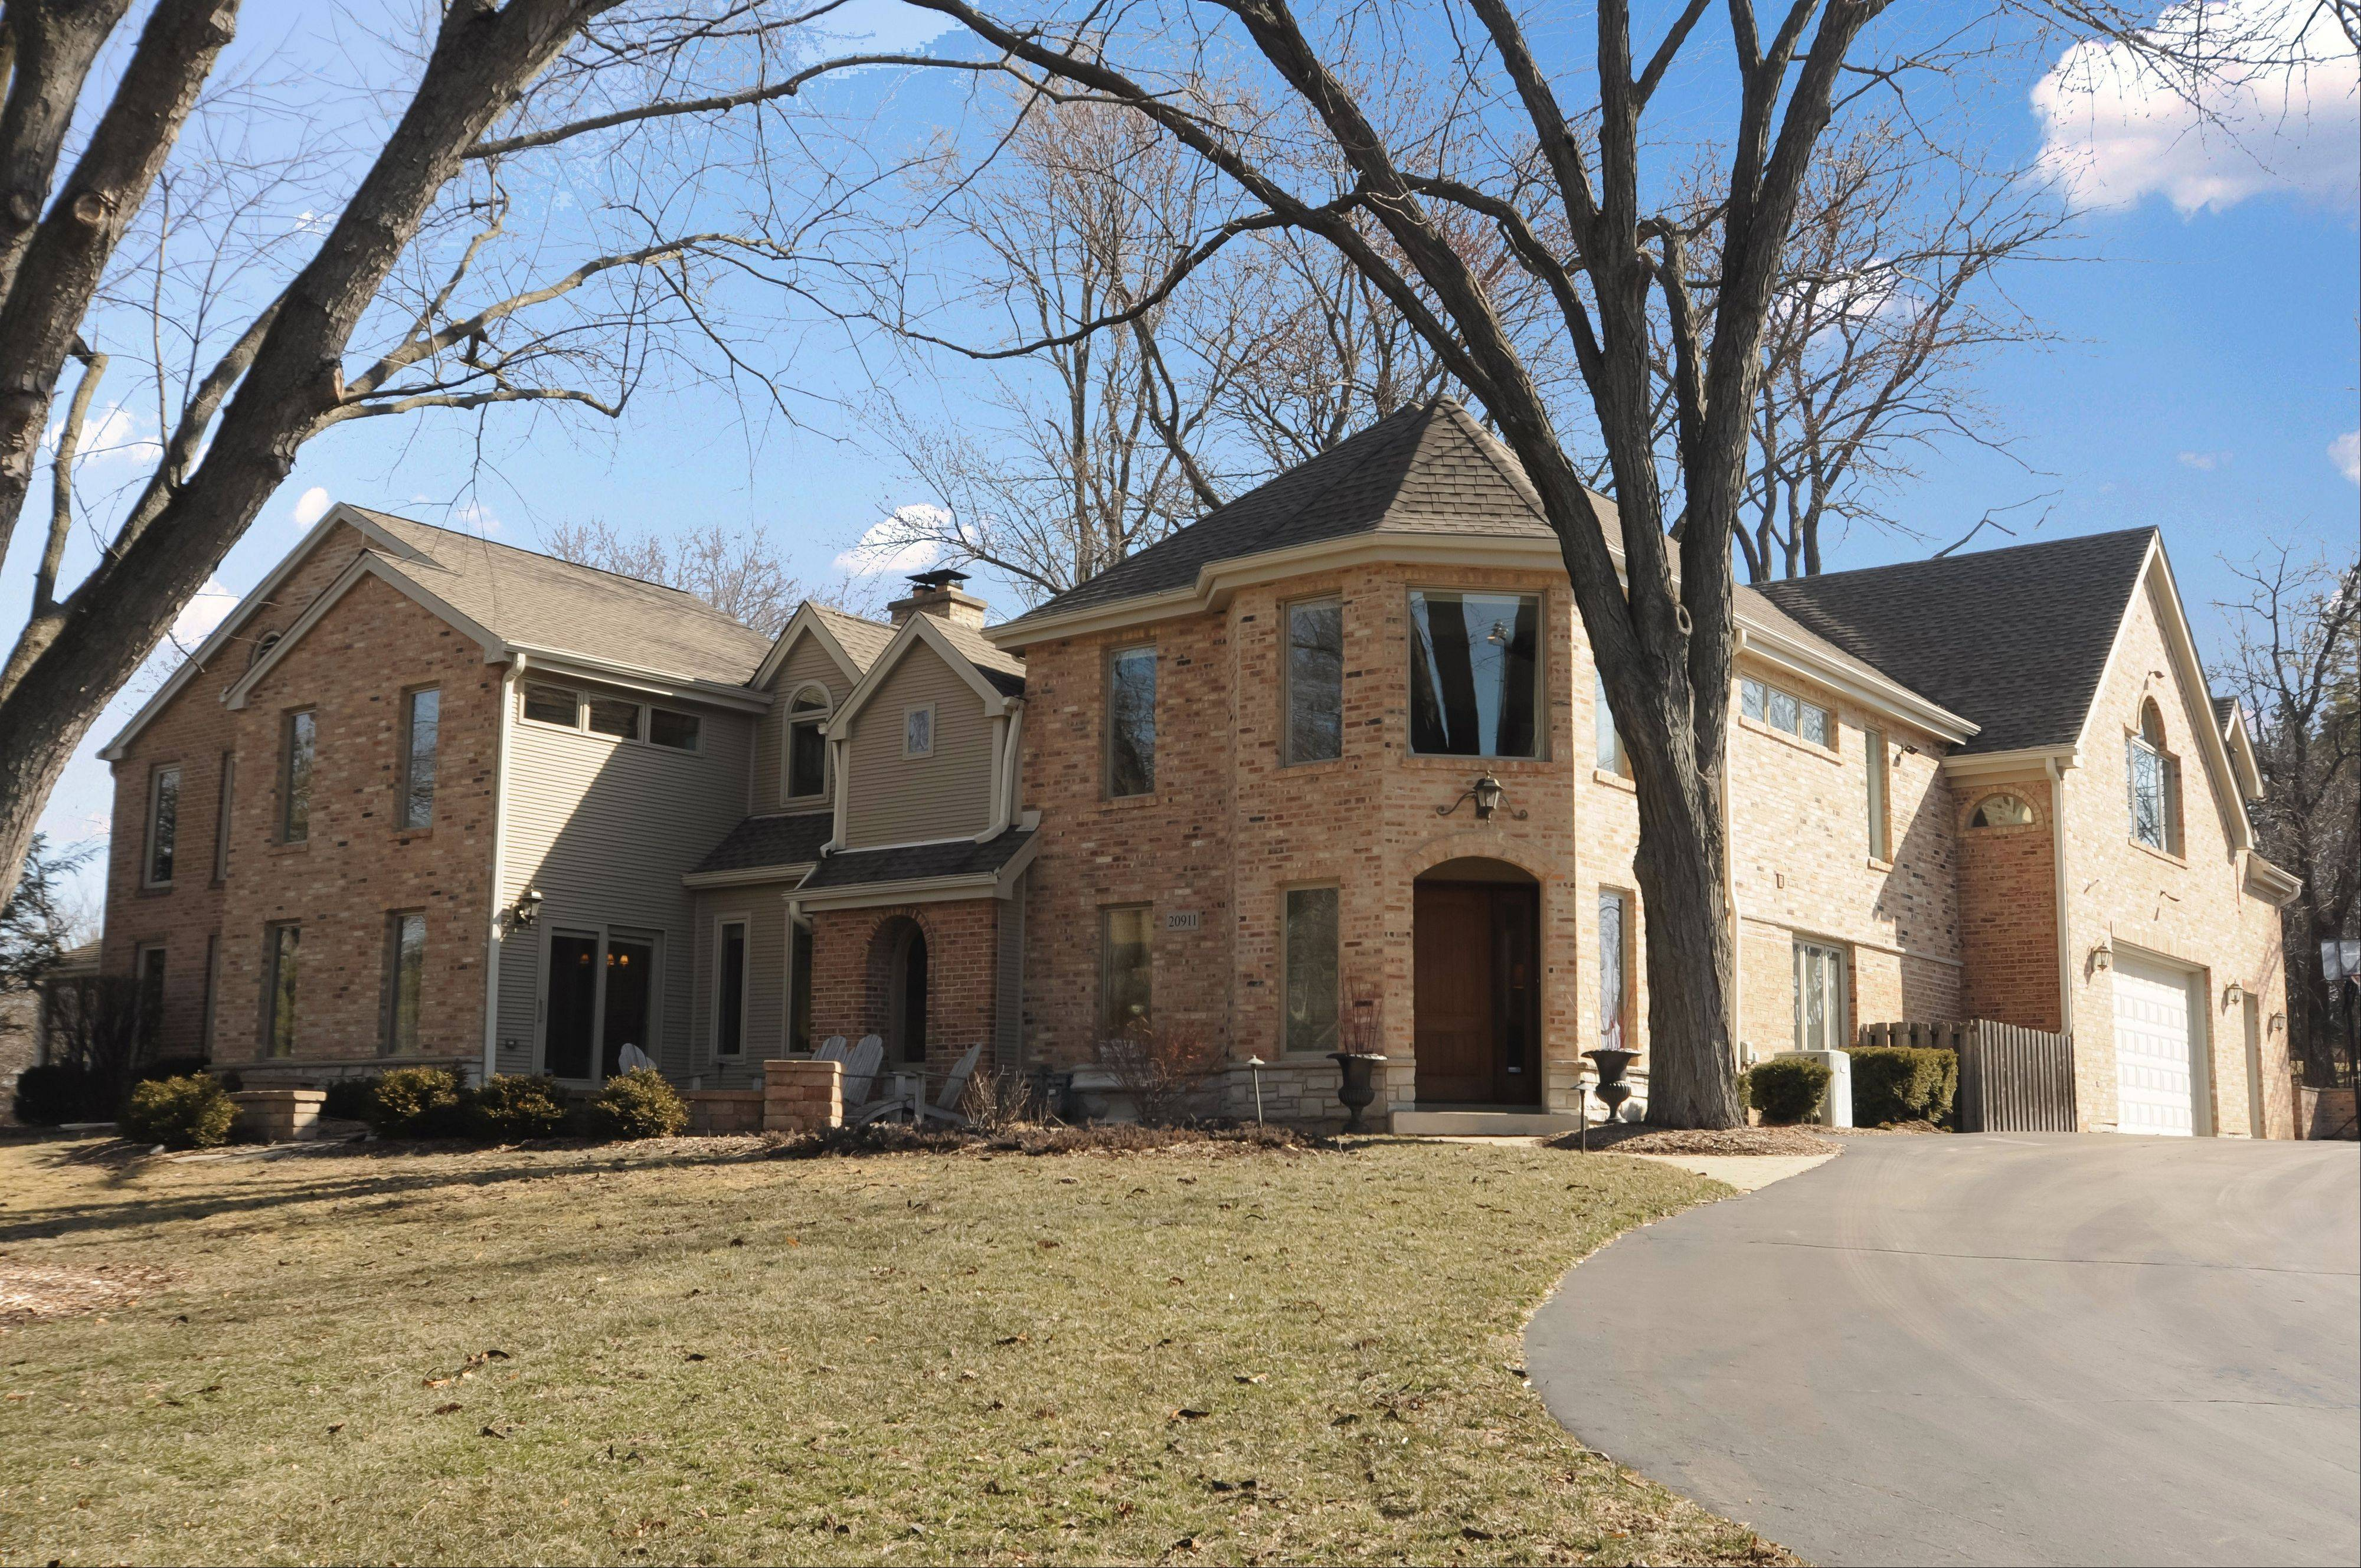 This brick home close to downtown Barrington has been enlarged in recent years.